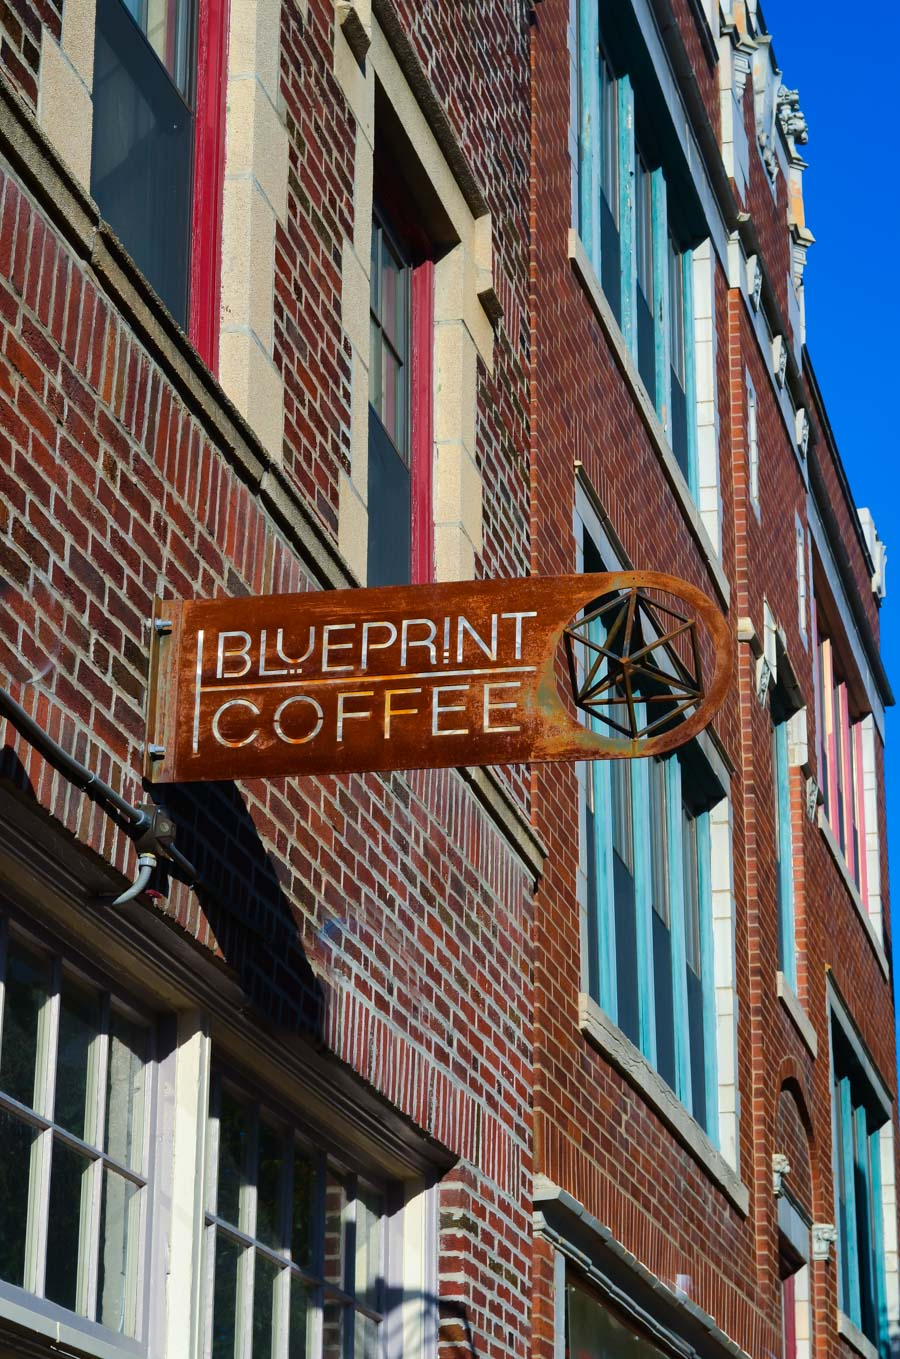 Where to Eat in St. Louis | Restaurant Guide | Blueprint Coffee